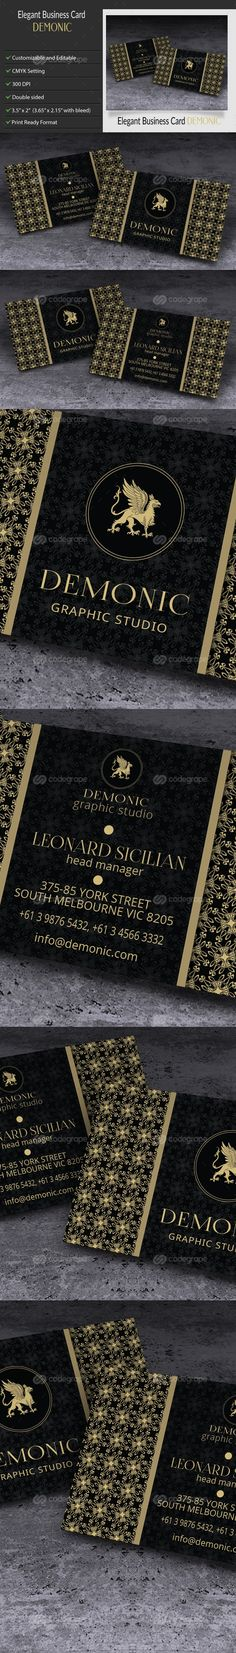 Elegant Creative Business Card – Demonic on @codegrape. More Info: http://www.codegrape.com/item/elegant-creative-business-card-%e2%80%93-demonic/9418